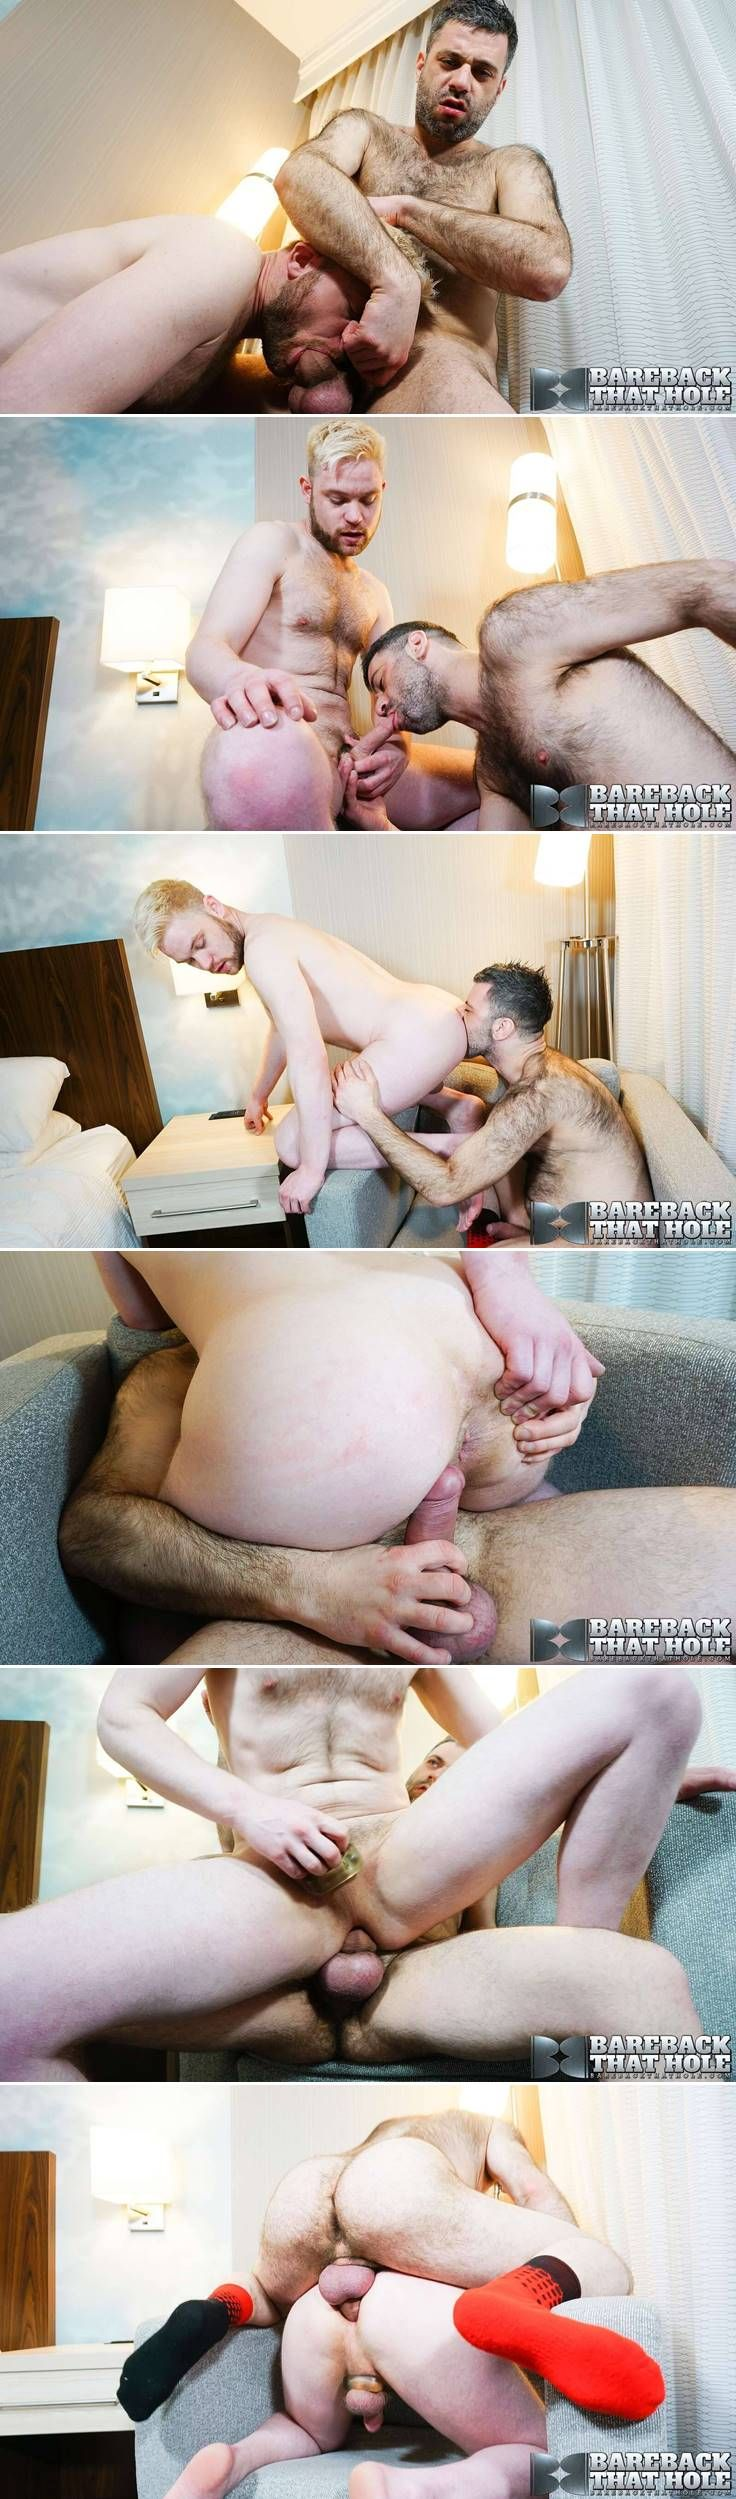 Bareback That Hole: Ducky & Will Price